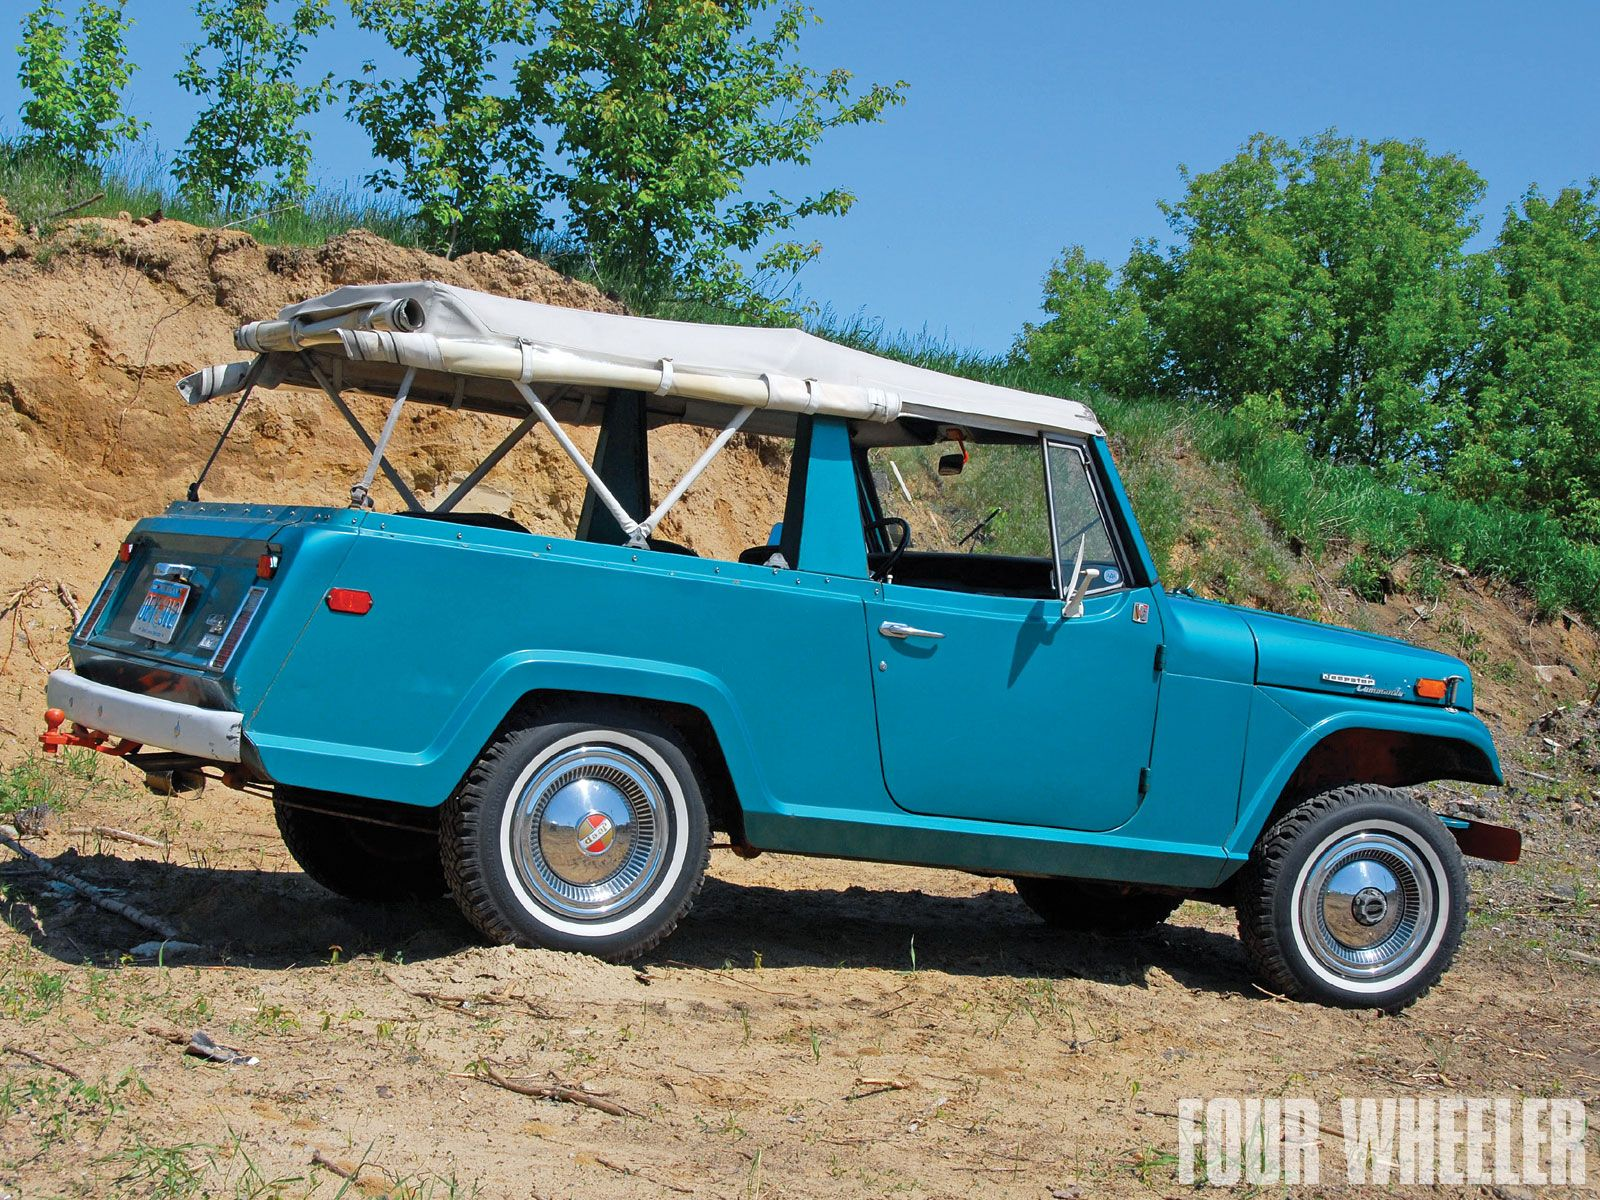 67 Jeepster Commando Convertible Jeepster Commando Jeepster Willys Jeep